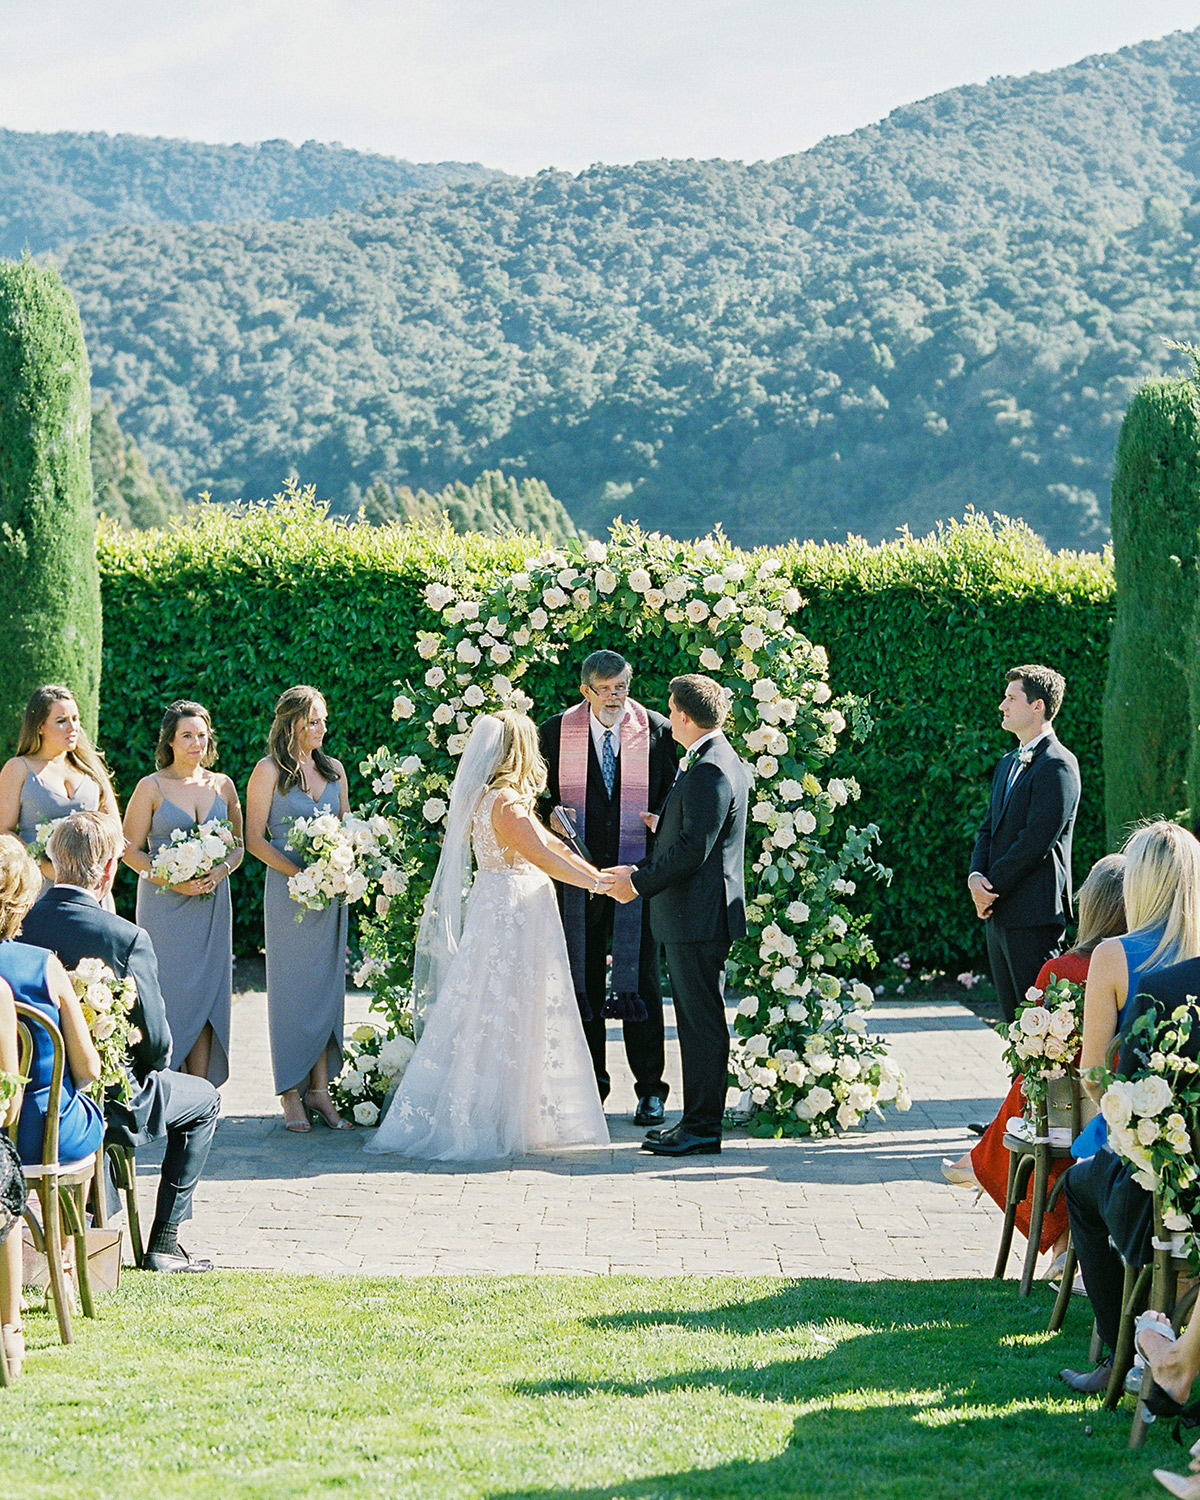 bride and groom exchange wedding vows during outdoor ceremony